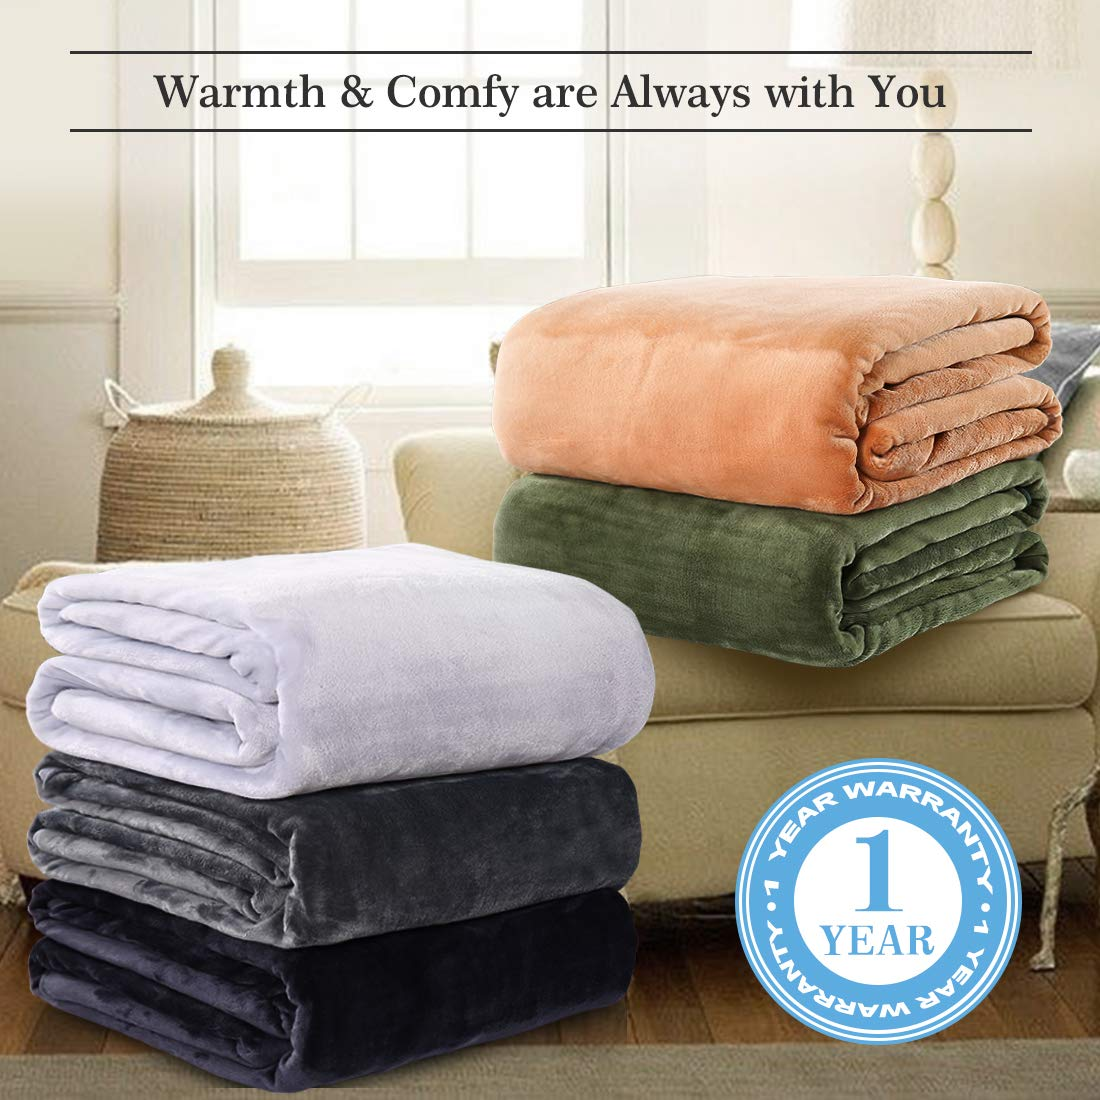 LEISURE TOWN Fleece Blanket King Size Fuzzy Soft Plush Blanket Oversized 330GSM for All Season Spring Summer Autumn Throws for Couch Bed Sofa, 108 by 90 Inches, Dark Grey